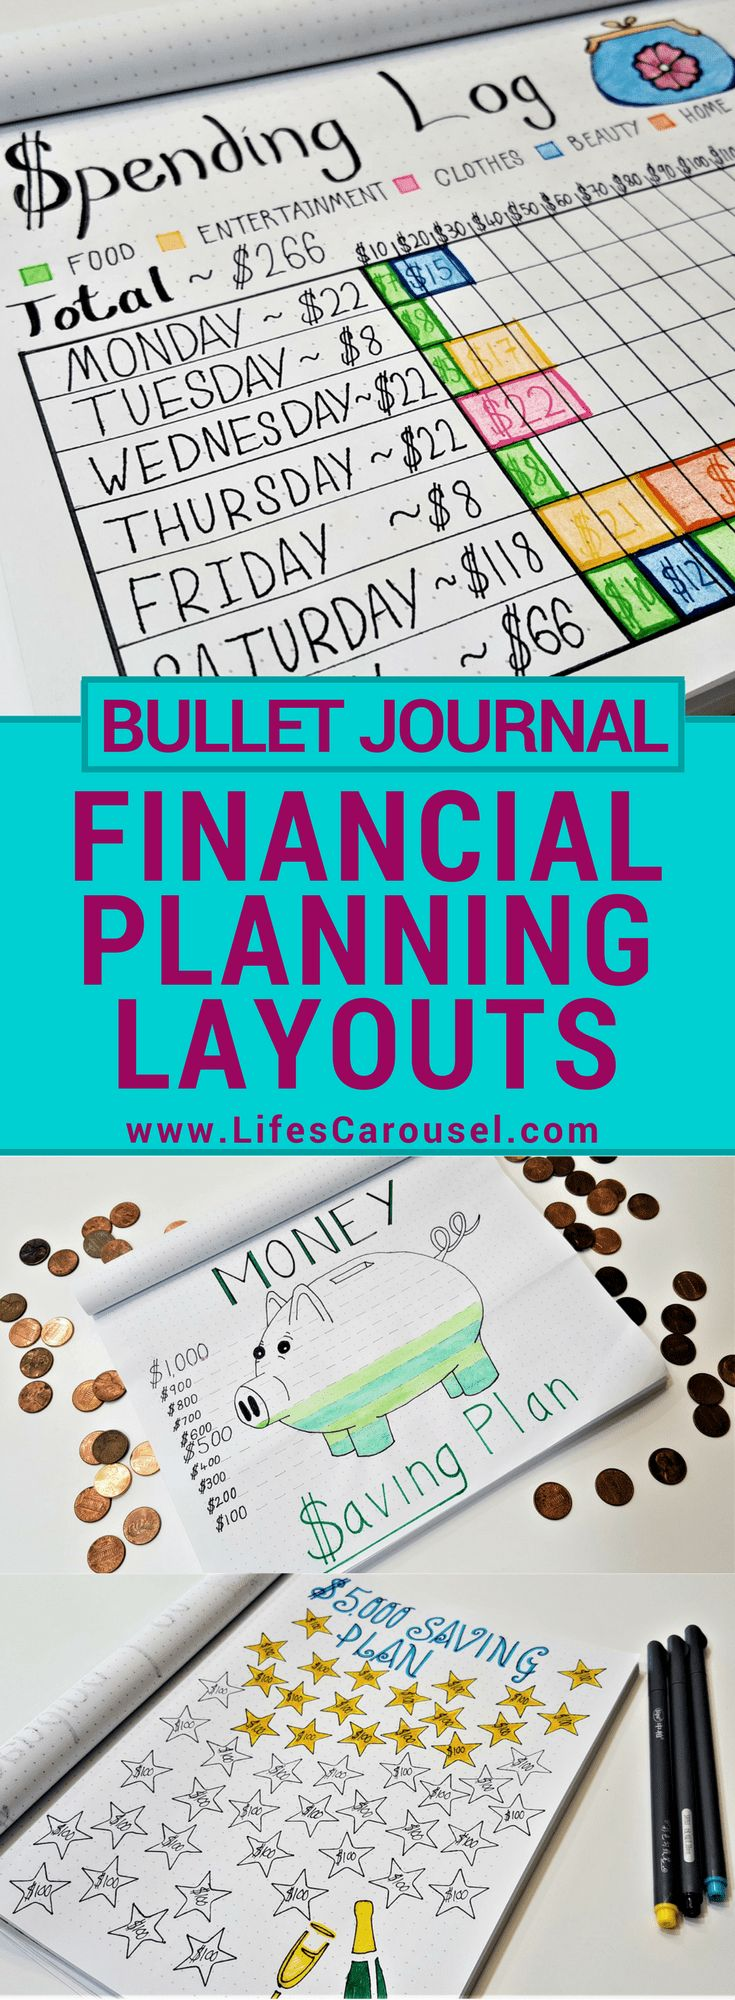 Bullet Journal Budget Tracker & More   Awesome ways to use your bullet journal as a savings tracker, money layouts, spending log spread and more. Get your finances in order with your Bujo!